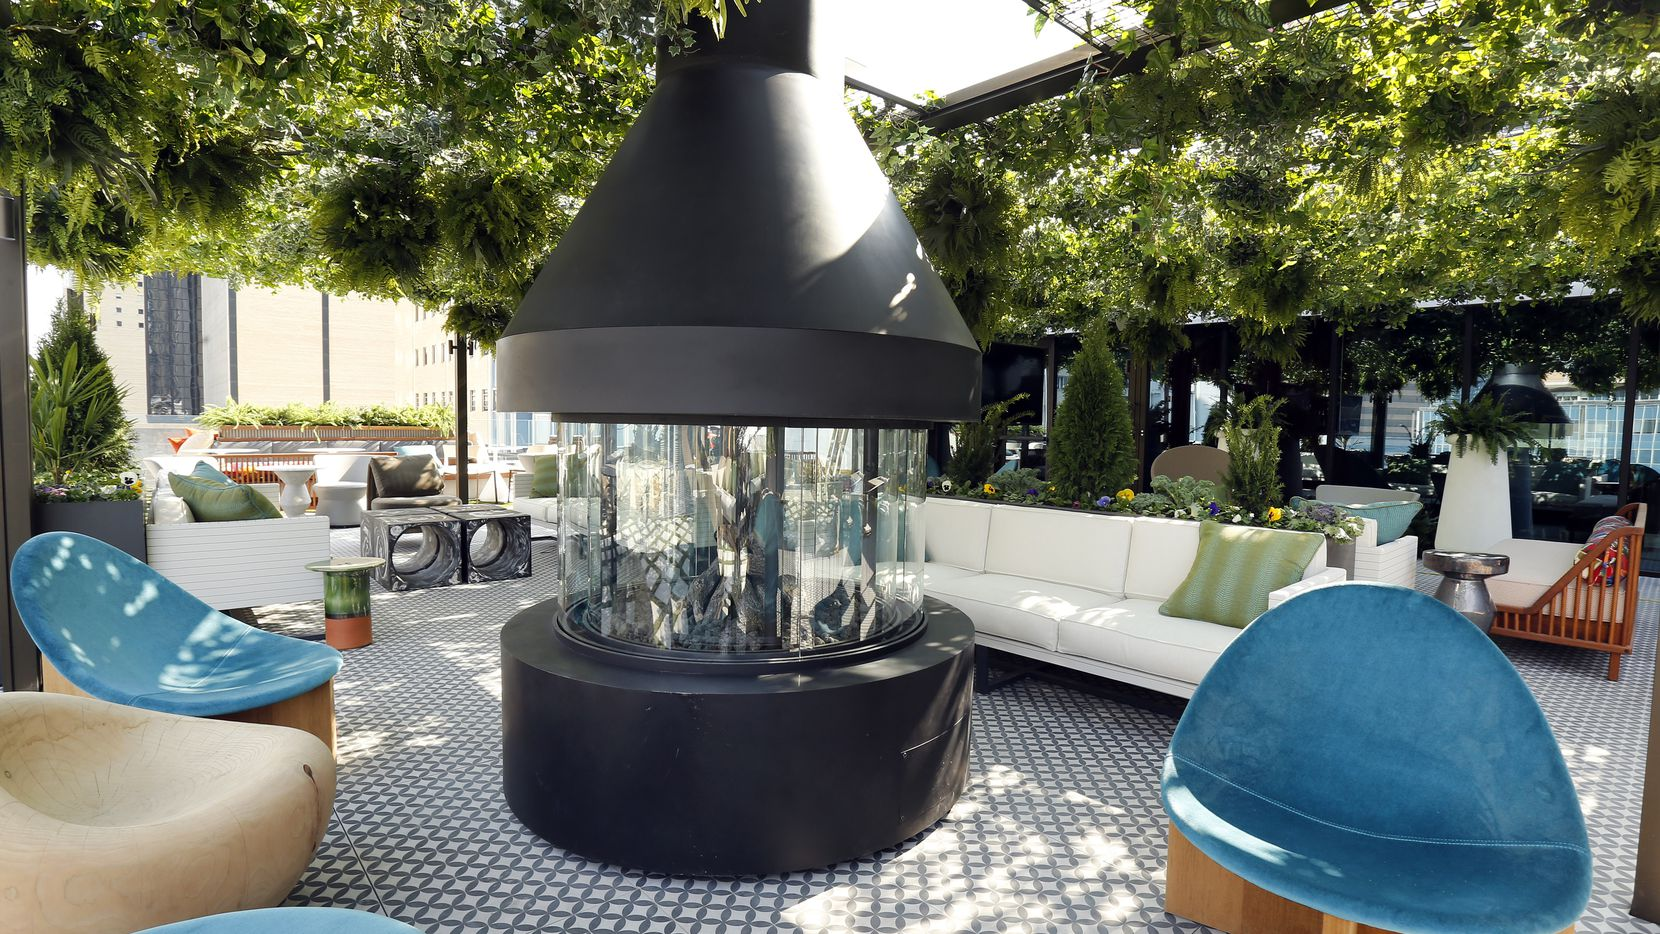 A large fireplace and funky furniture are pictured on the Catbird outdoor patio area of the 219-room Thompson Dallas luxury hotel. (Tom Fox/The Dallas Morning News)